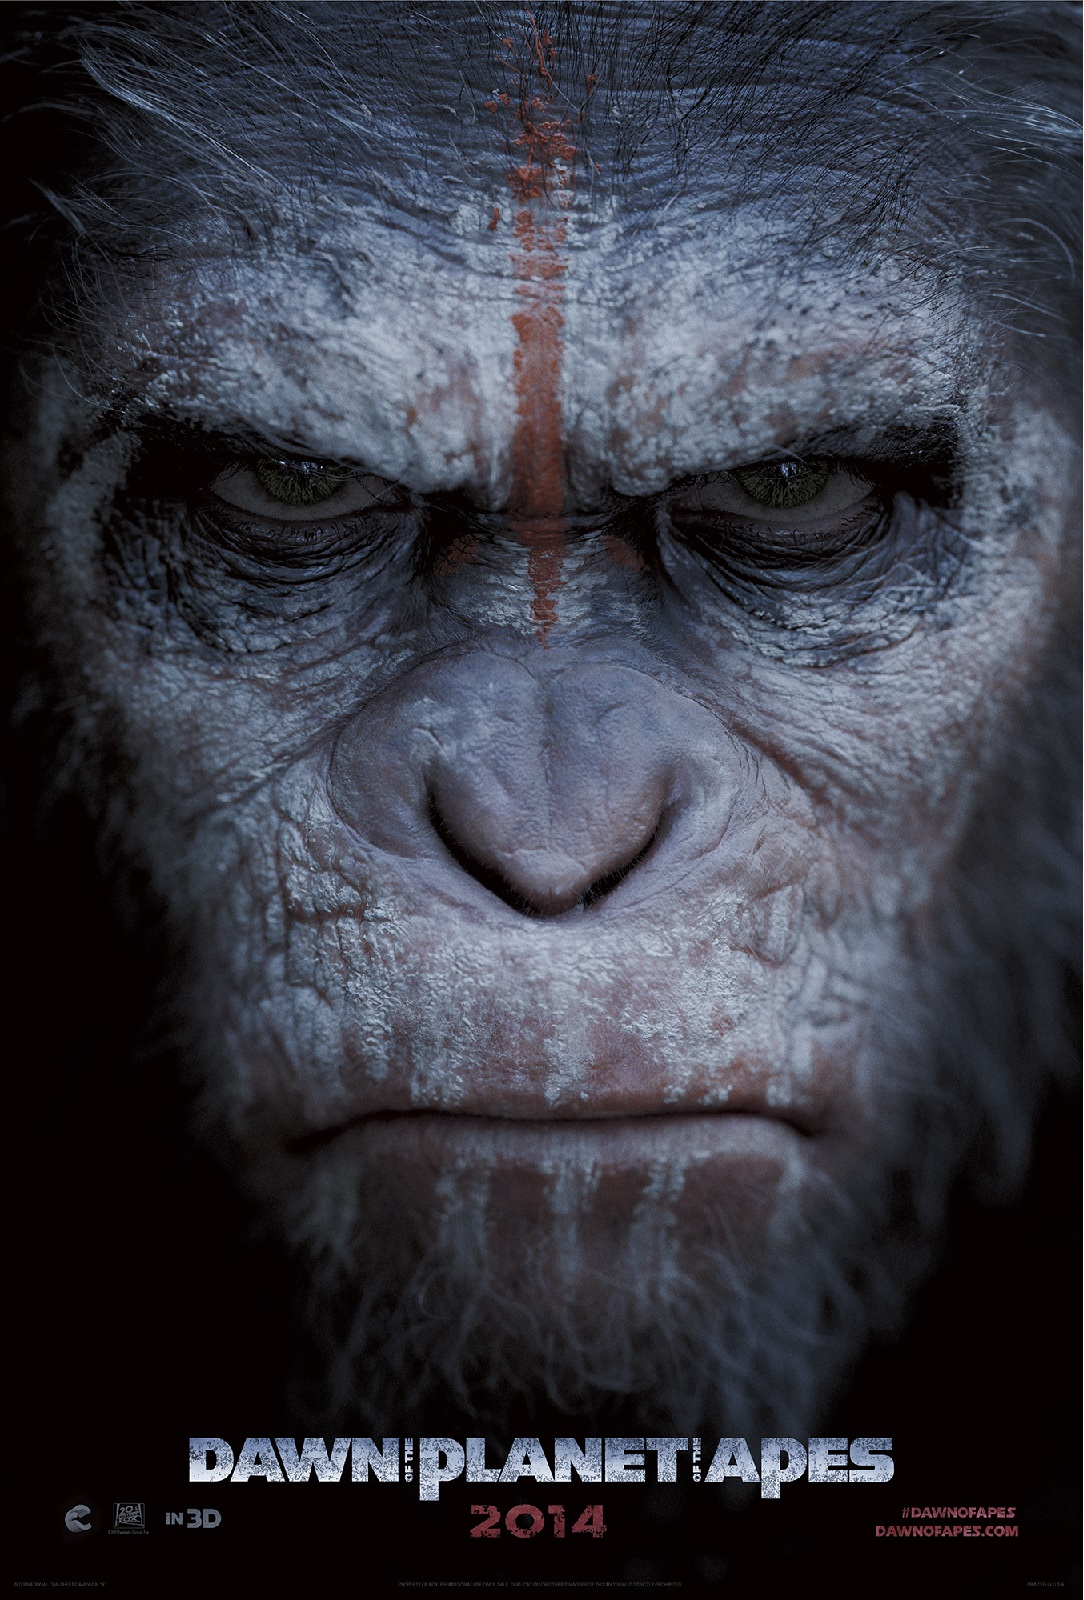 Dawn of the Planet of the Apes poster1 Matt Reeves to Direct Planet of the Apes 3